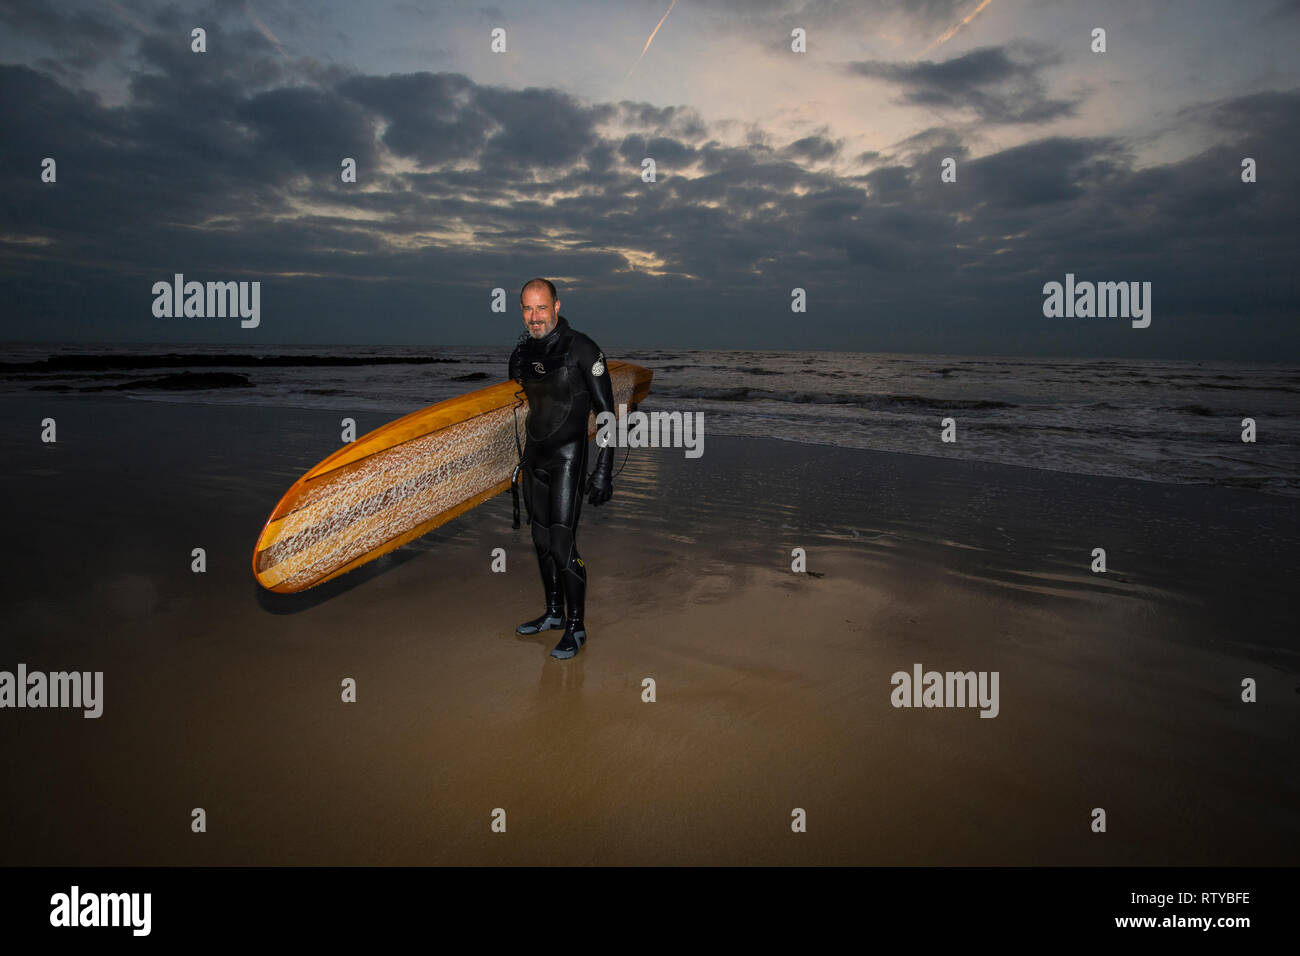 Surfer, Fill in Flash, Dusk, Compton Beach, Isle of Wight, England, UK, - Stock Image